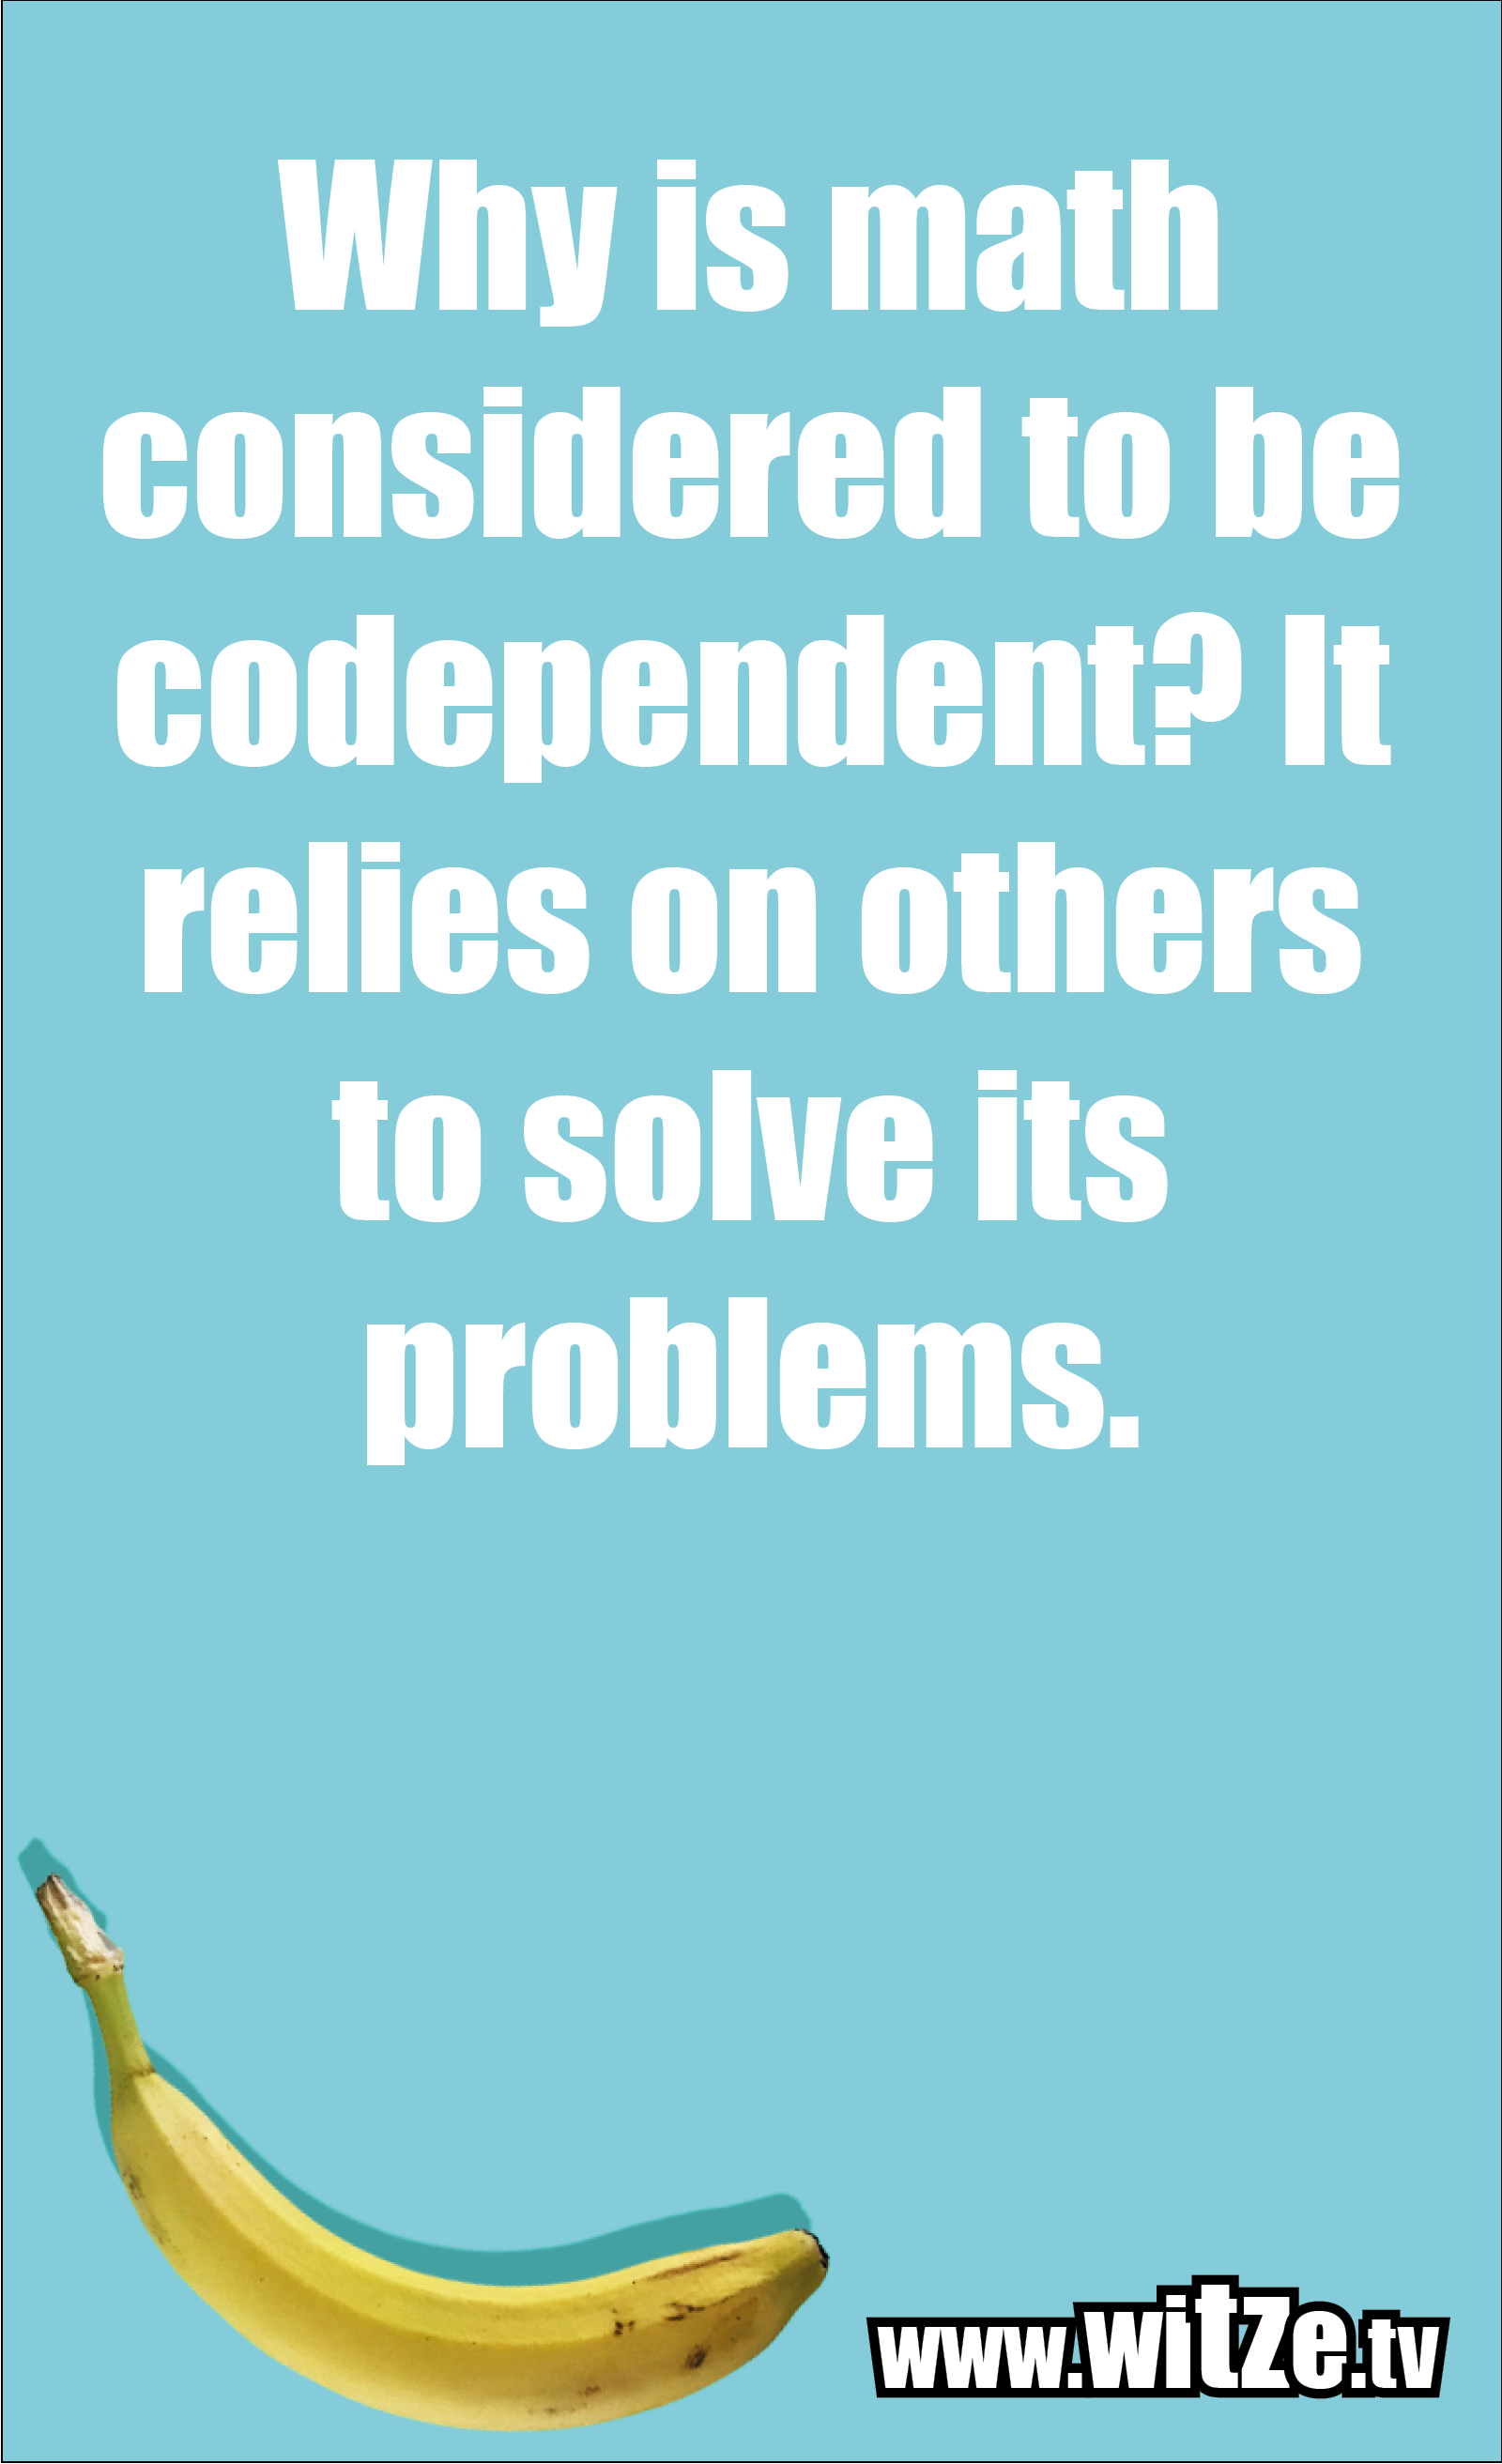 Math joke… Why is math considered to be codependent? It relies on others to solve its problems.